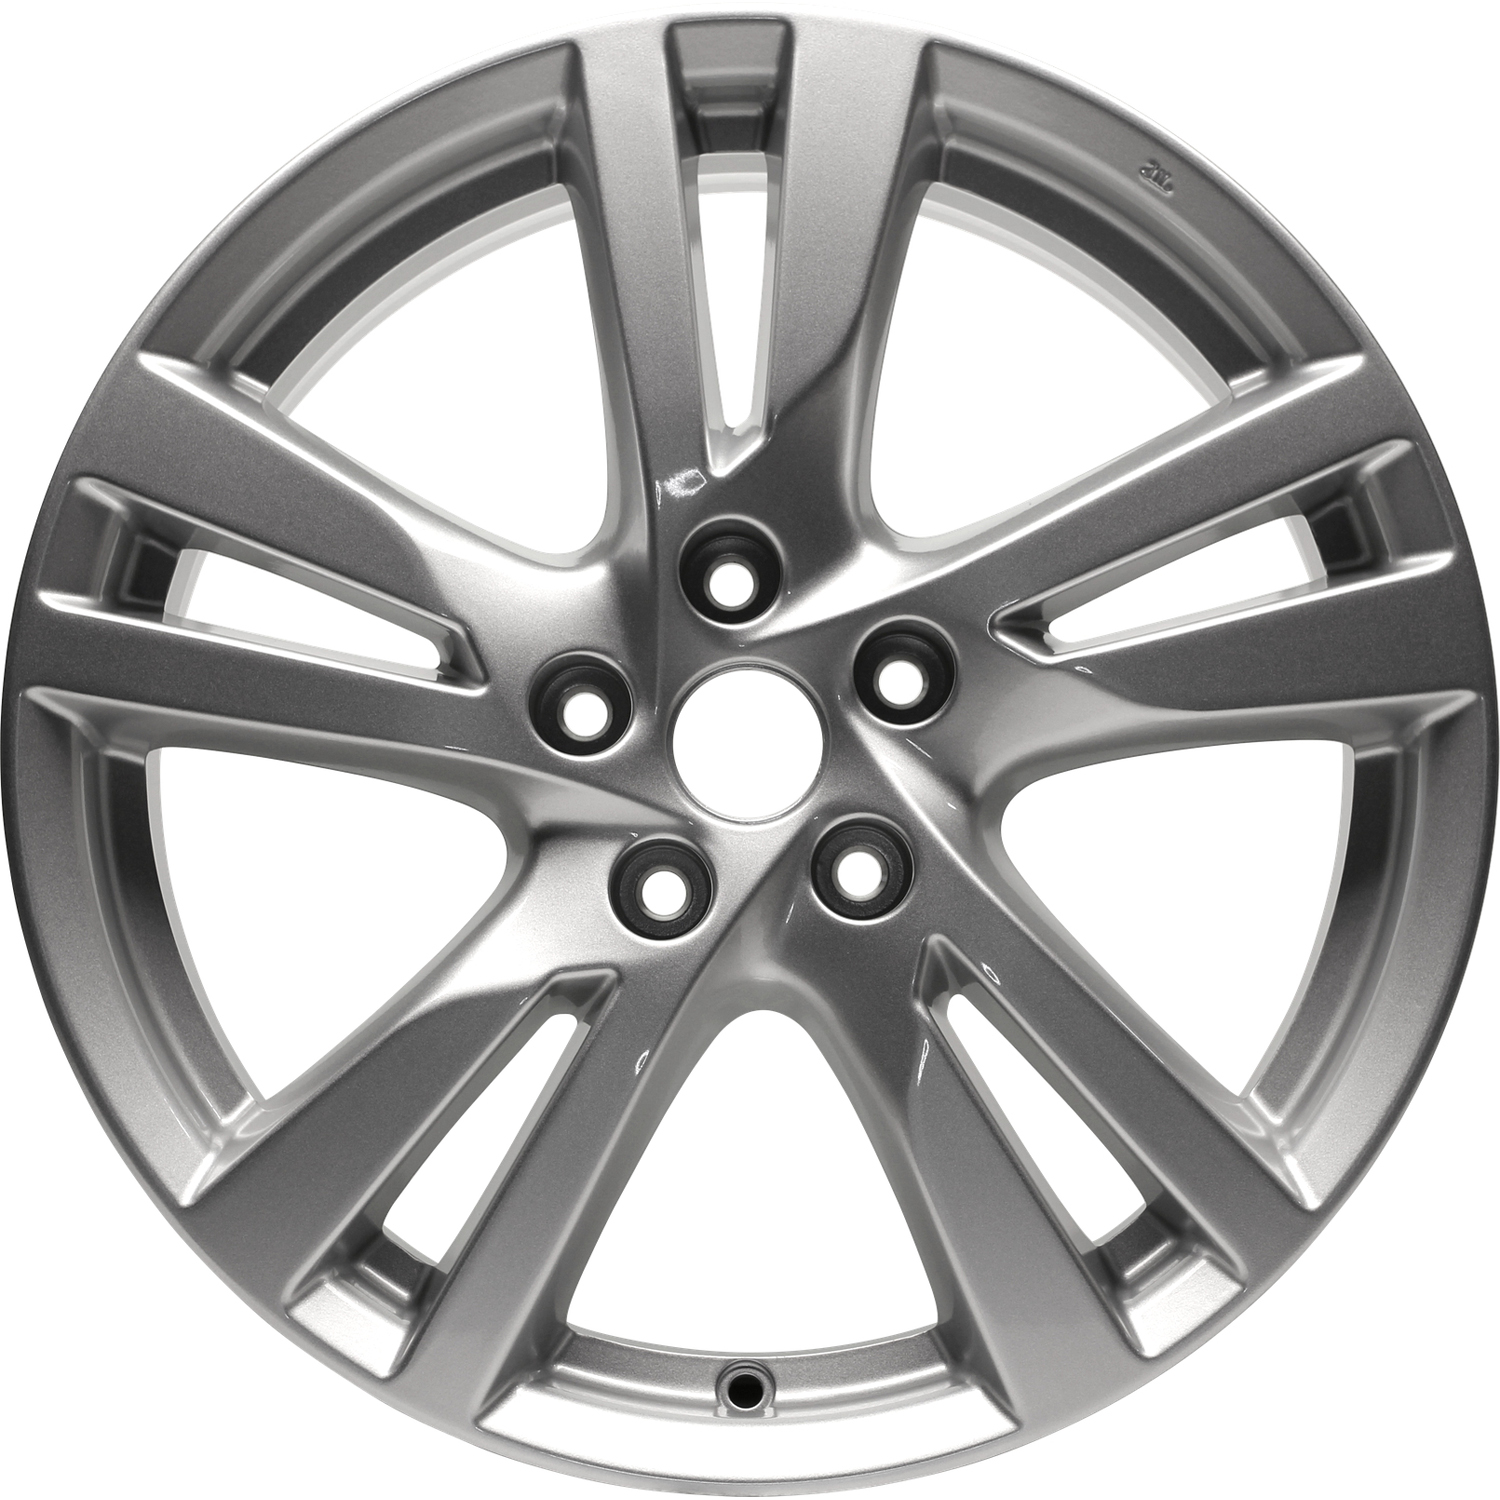 18 x 7 5 5 split spoke refurbished oem nissan alloy wheel silver 1954 Chevy Hubcaps 18 x 7 5 5 split spoke refurbished oem nissan alloy wheel silver metallic 62594